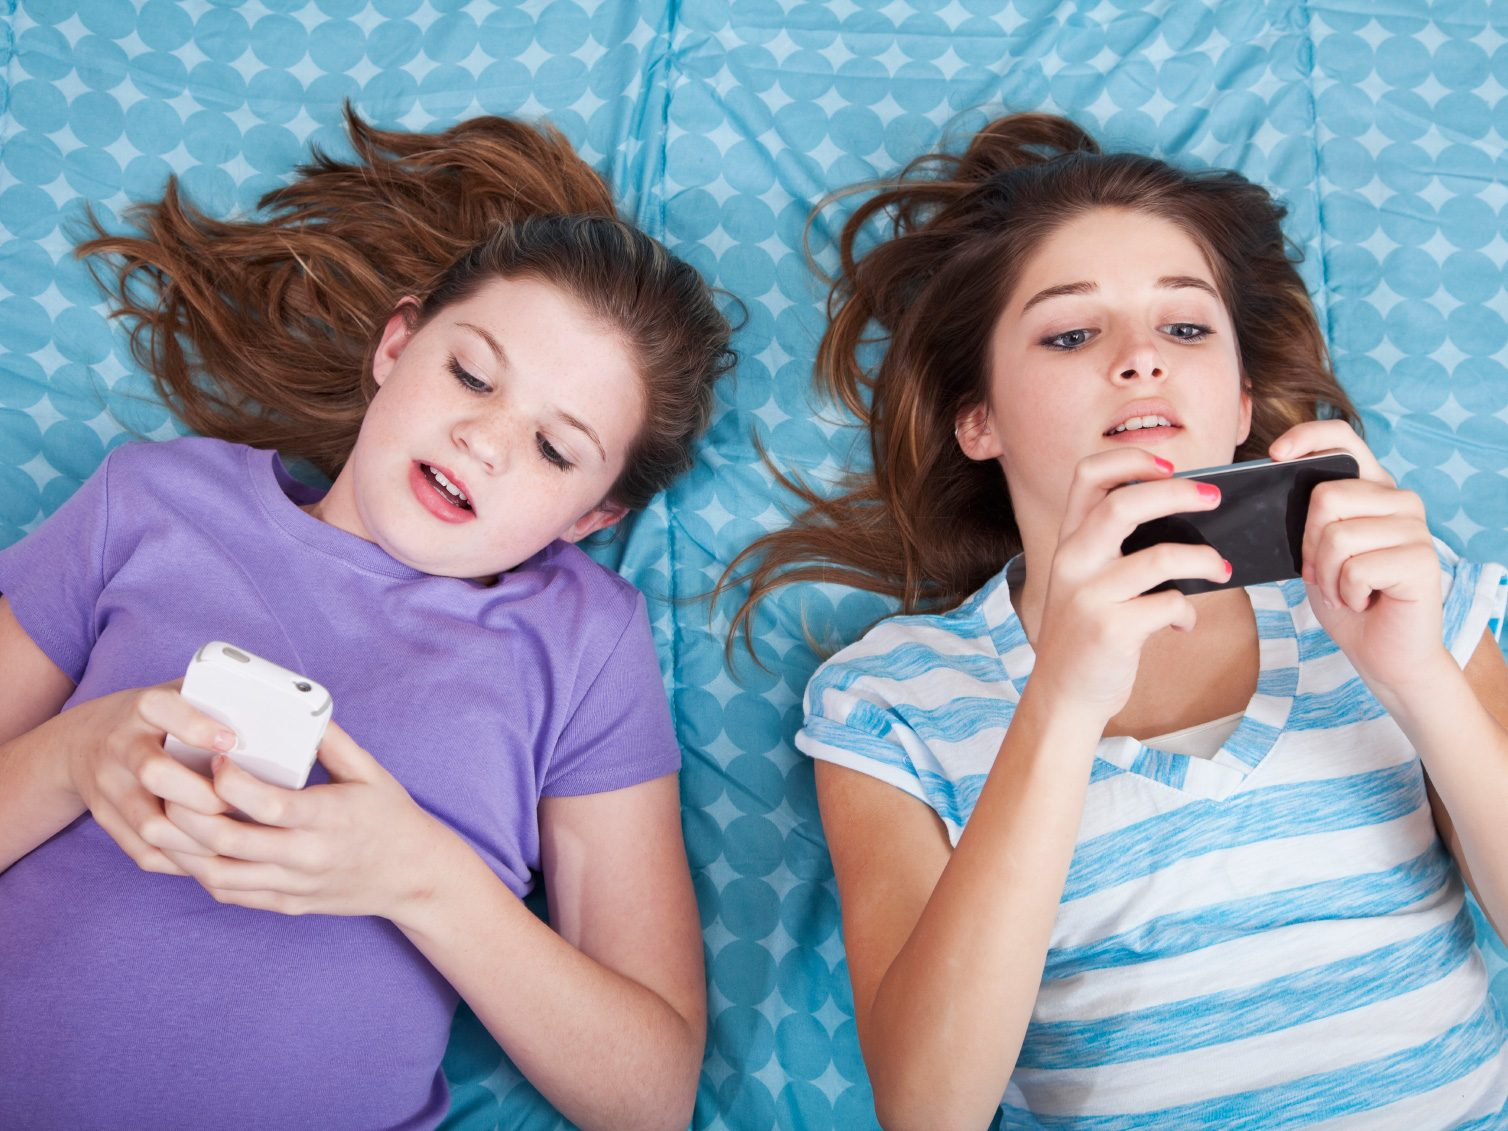 Load Up Your Smartphone with Games